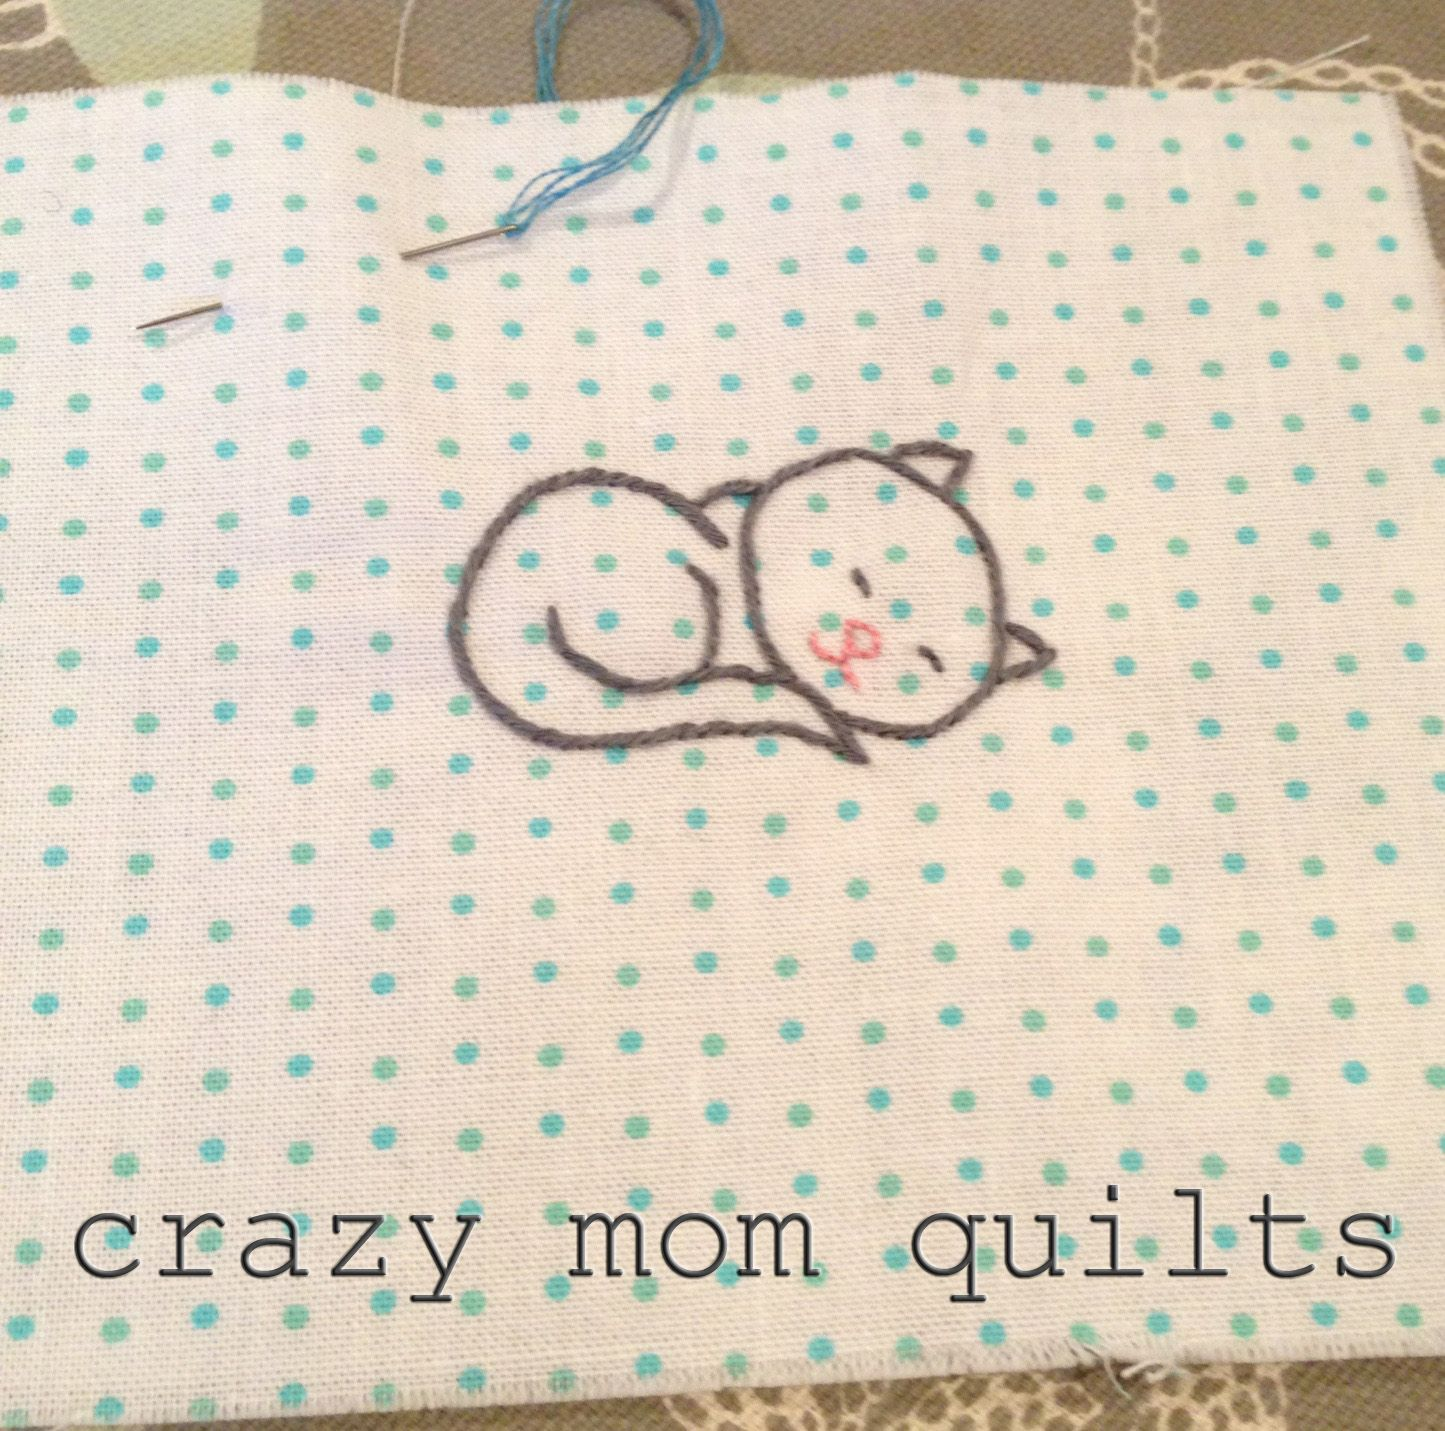 crazy mom quilts on the s is for stitch blog tour cats sticken pinterest. Black Bedroom Furniture Sets. Home Design Ideas